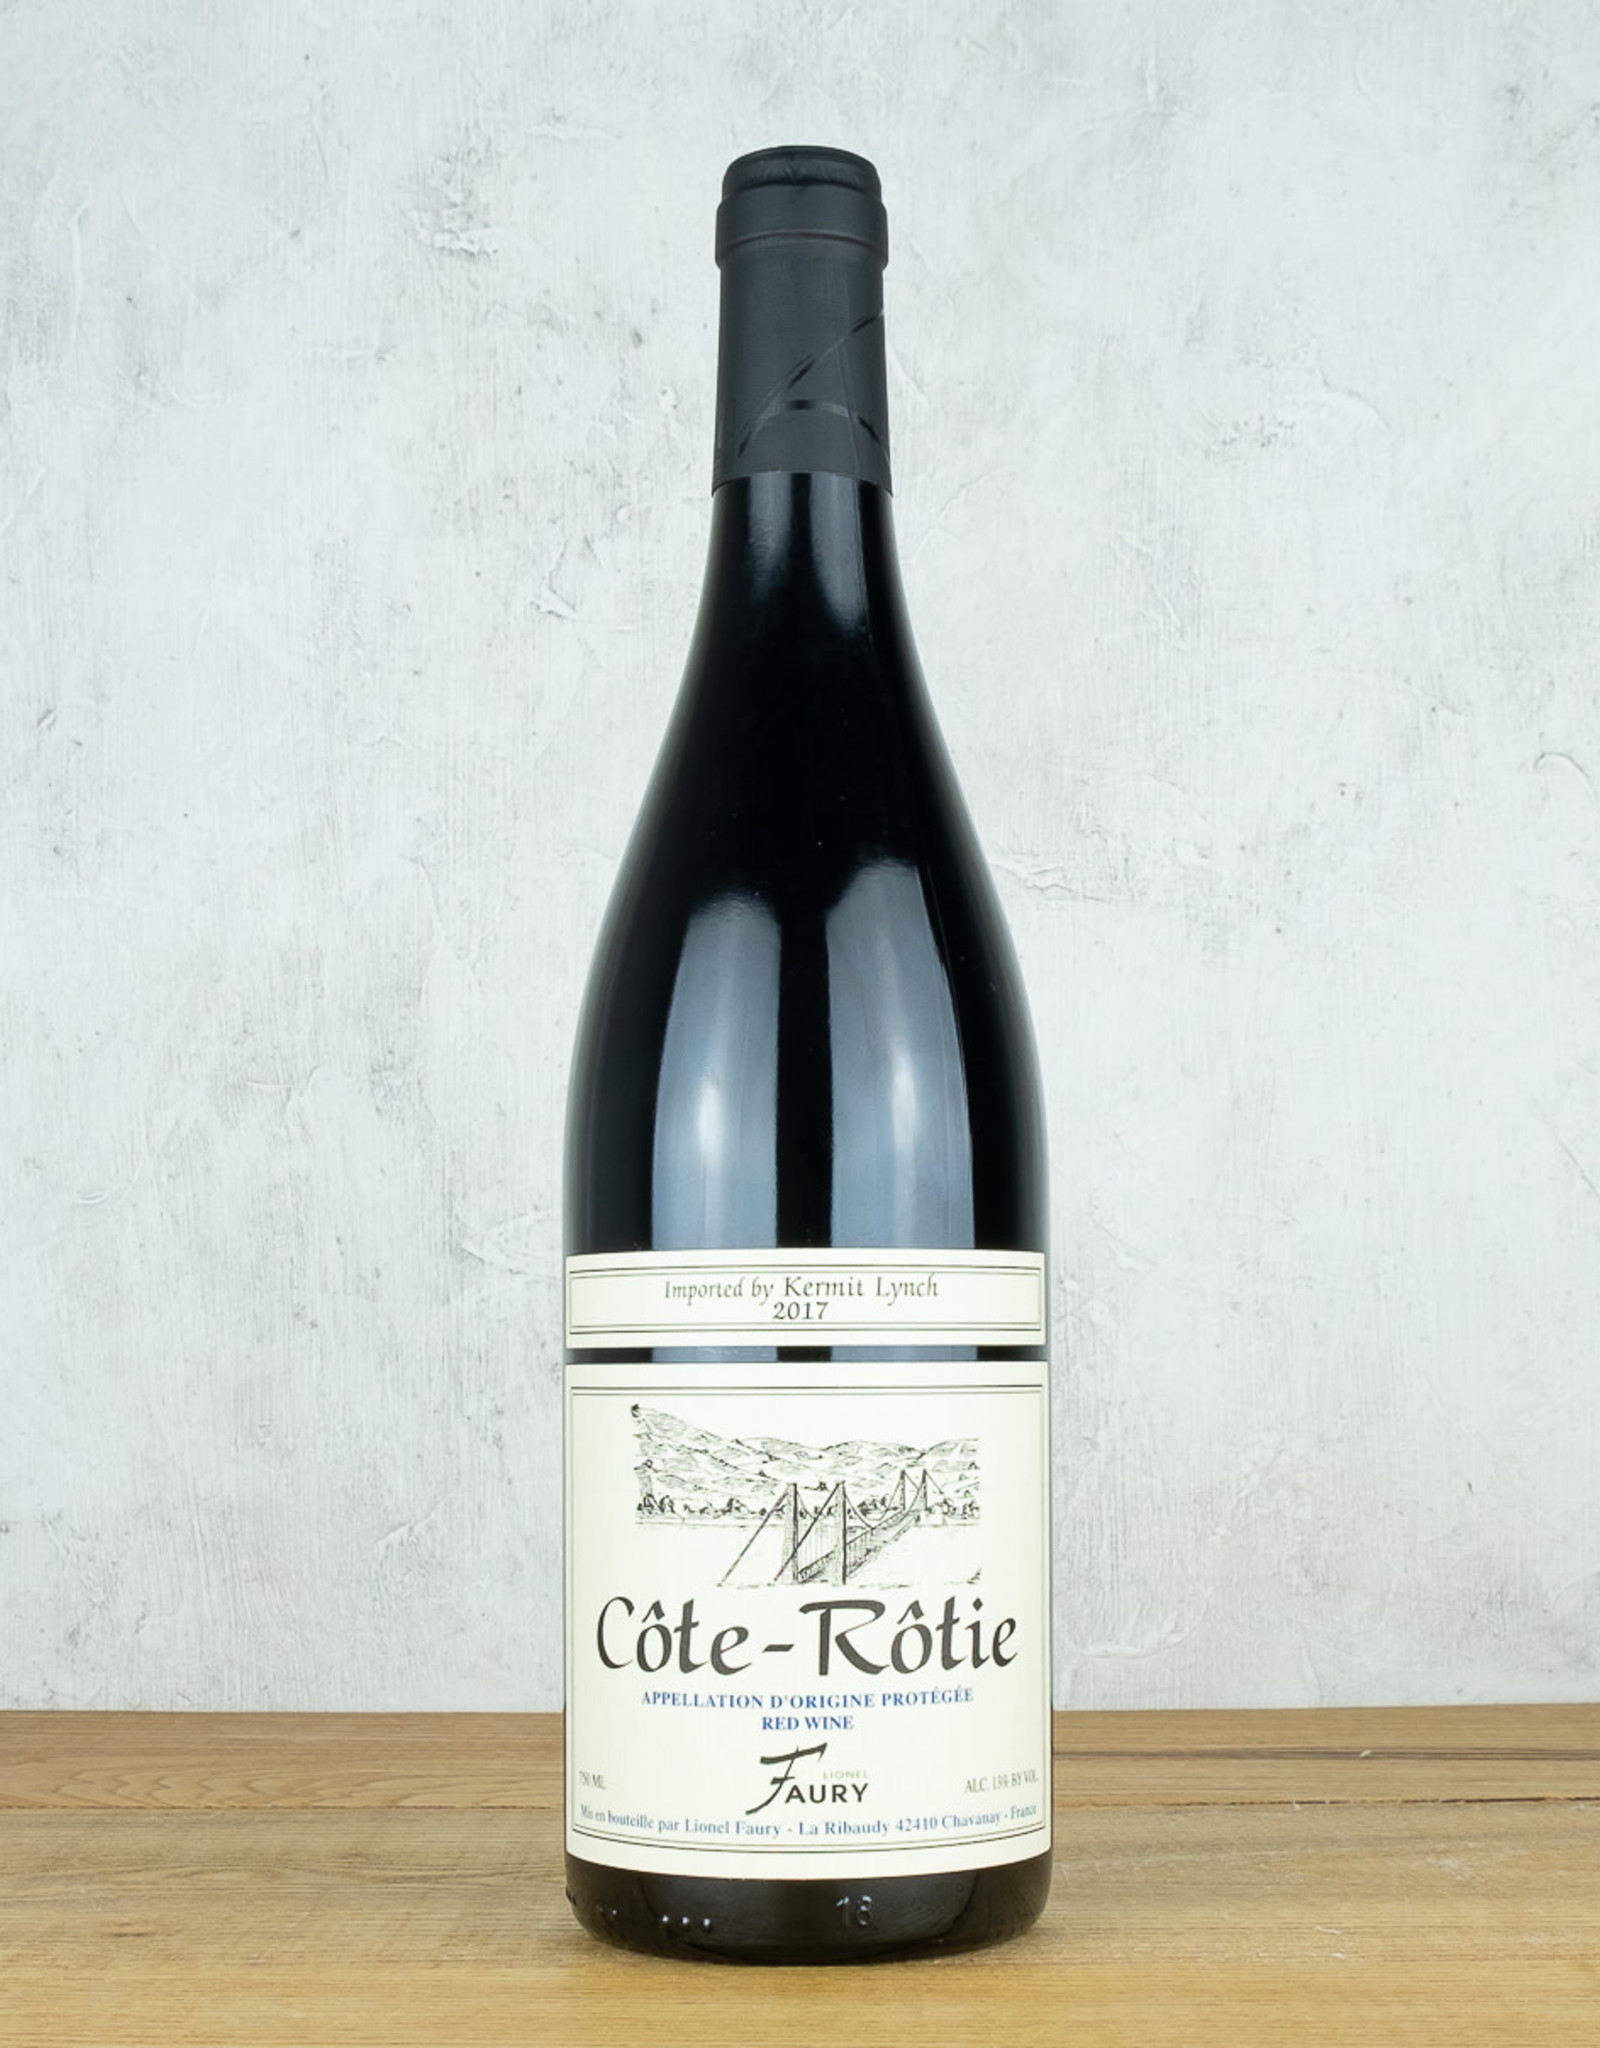 Faury Cote-Rotie